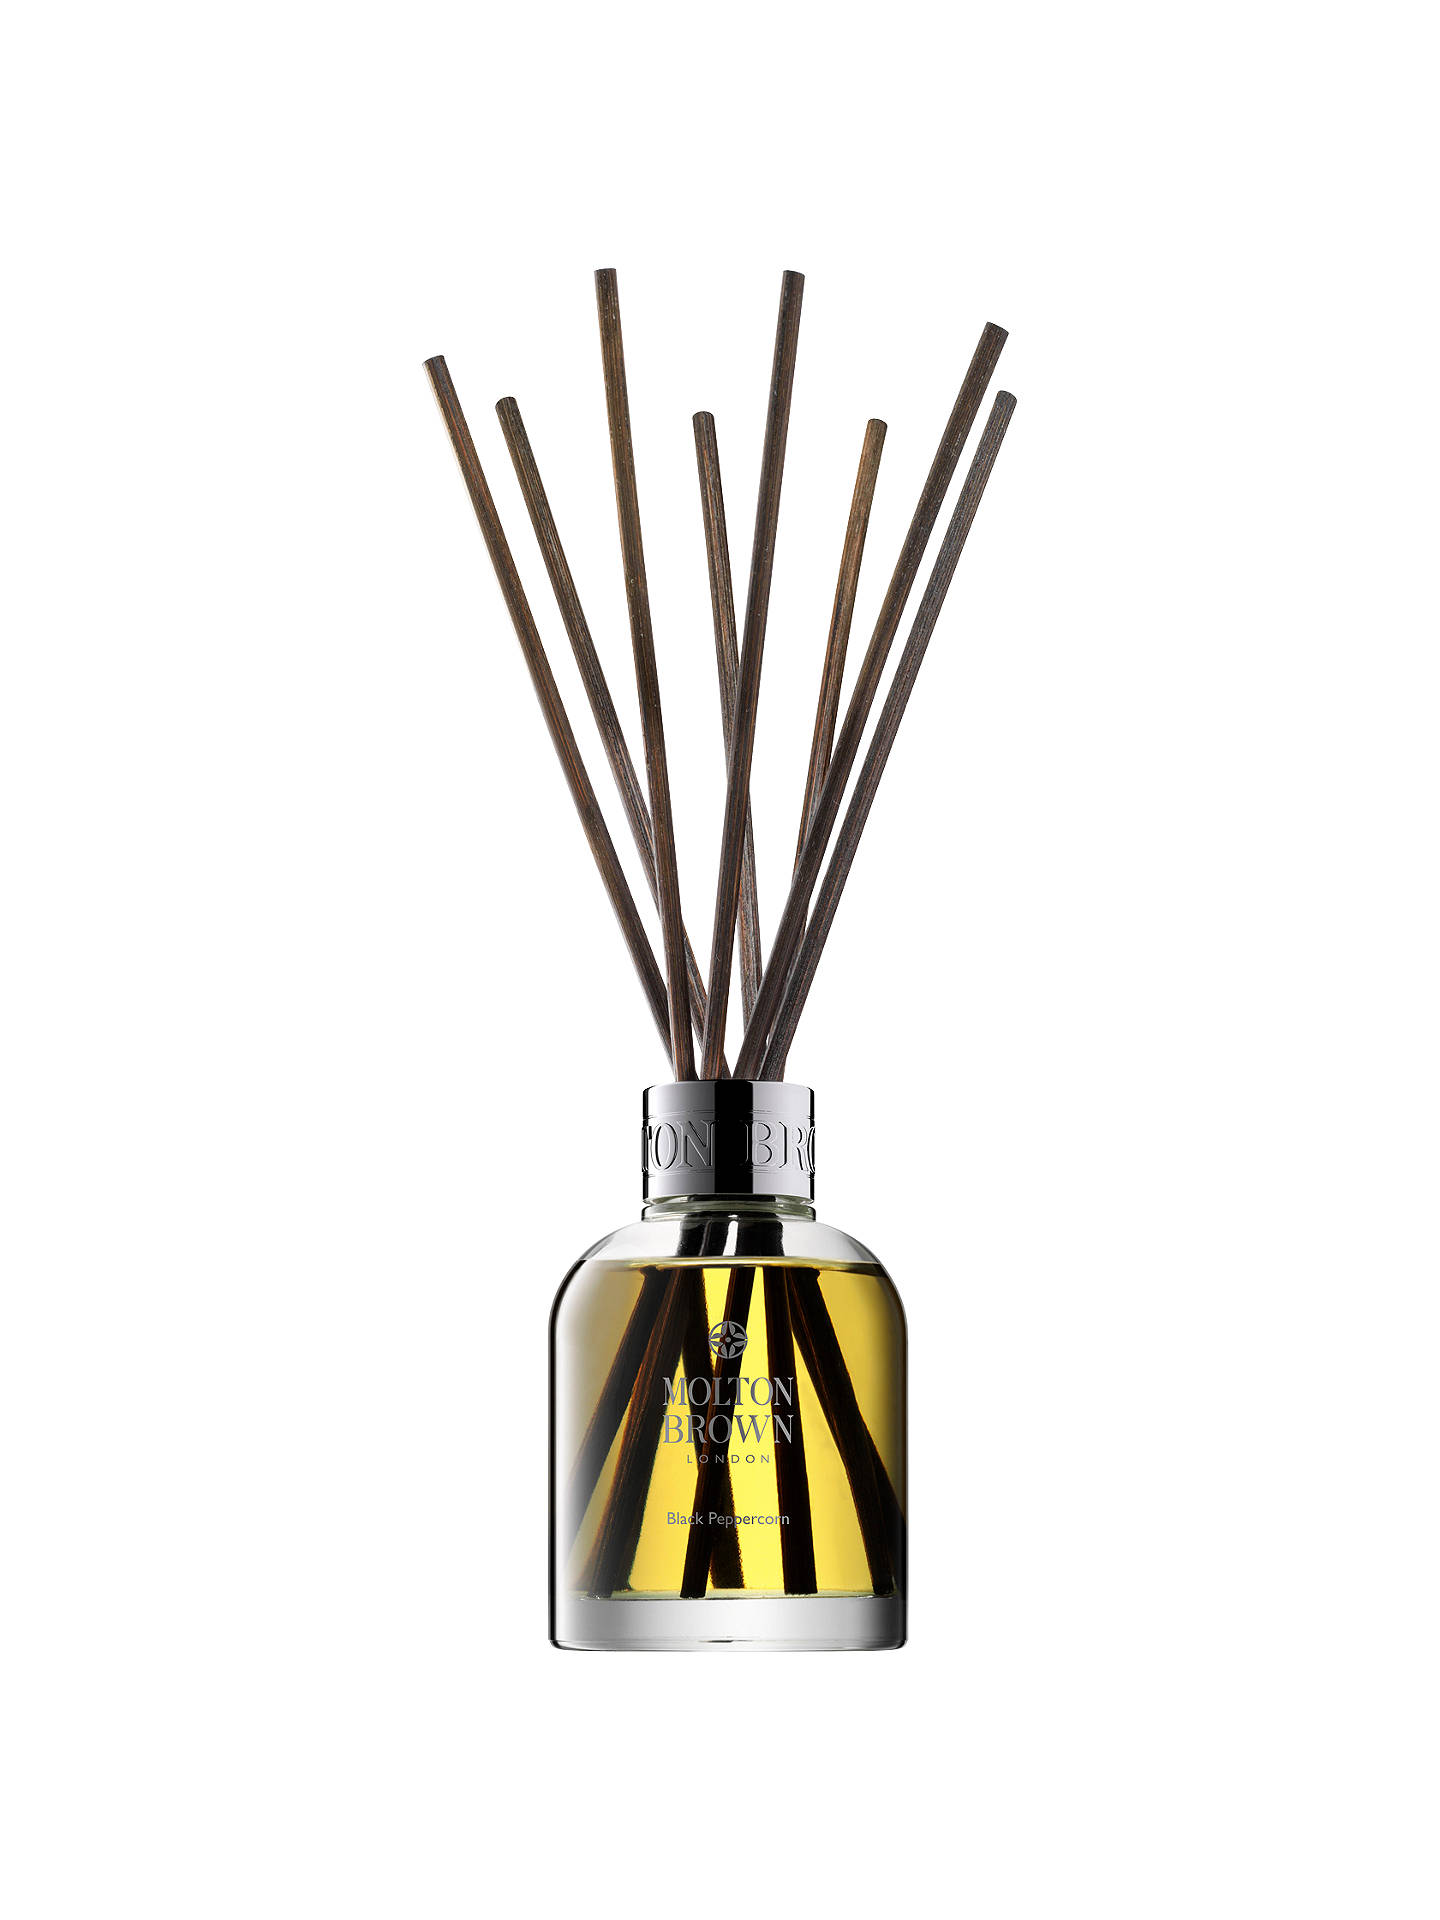 BuyMolton Brown Black Peppercorn Aroma Reeds Diffuser Online at johnlewis.com